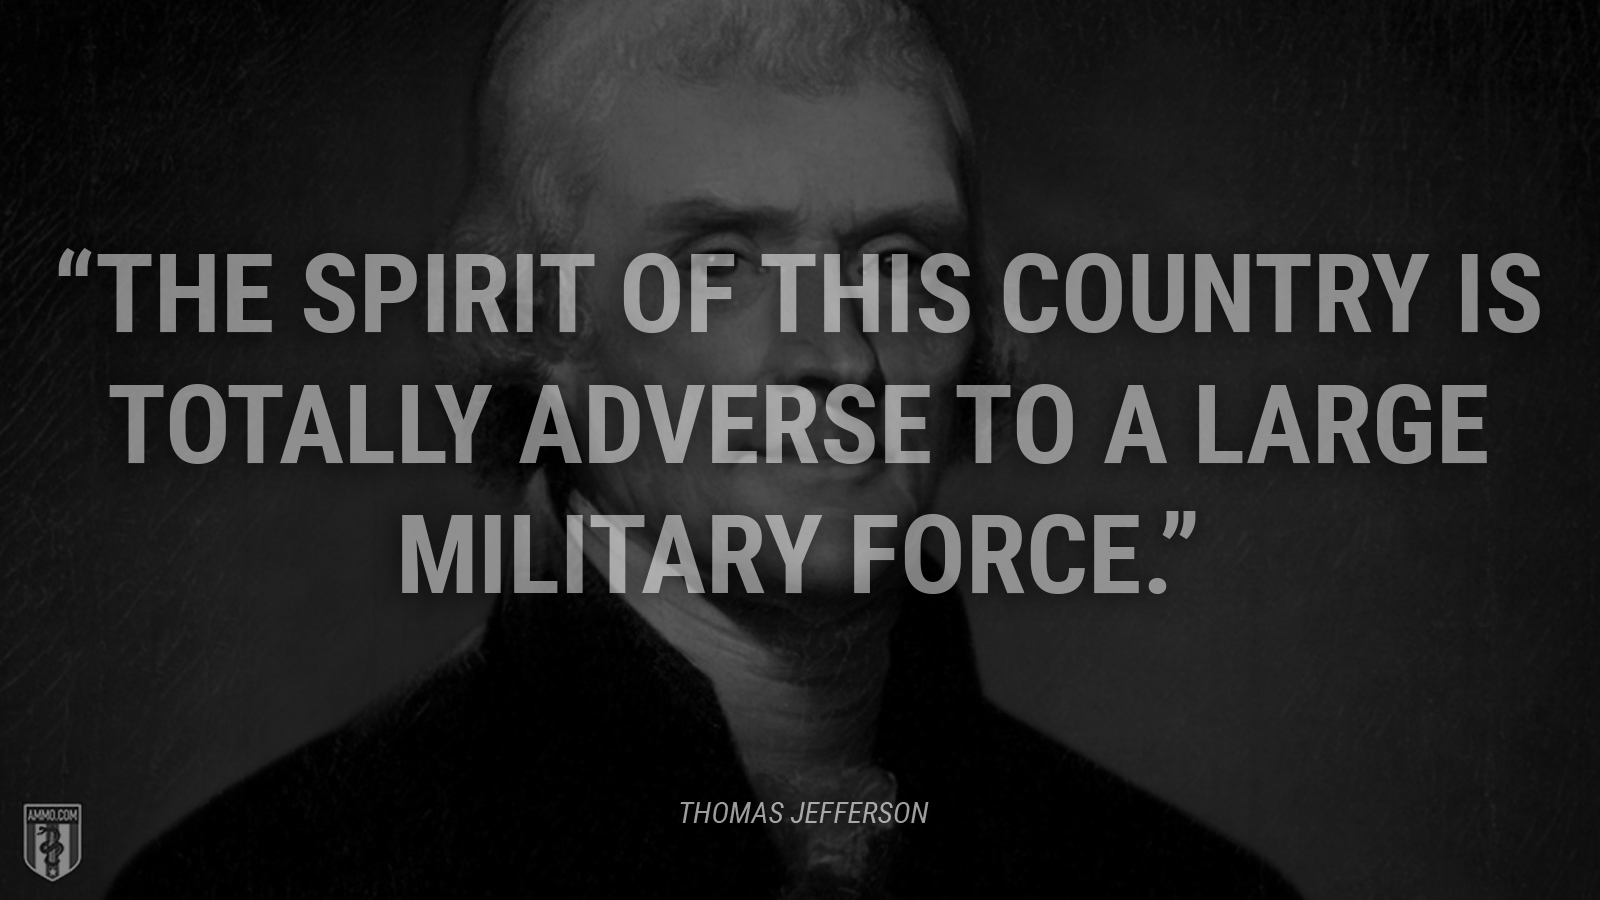 """The spirit of this country is totally adverse to a large military force."" - Thomas Jefferson"